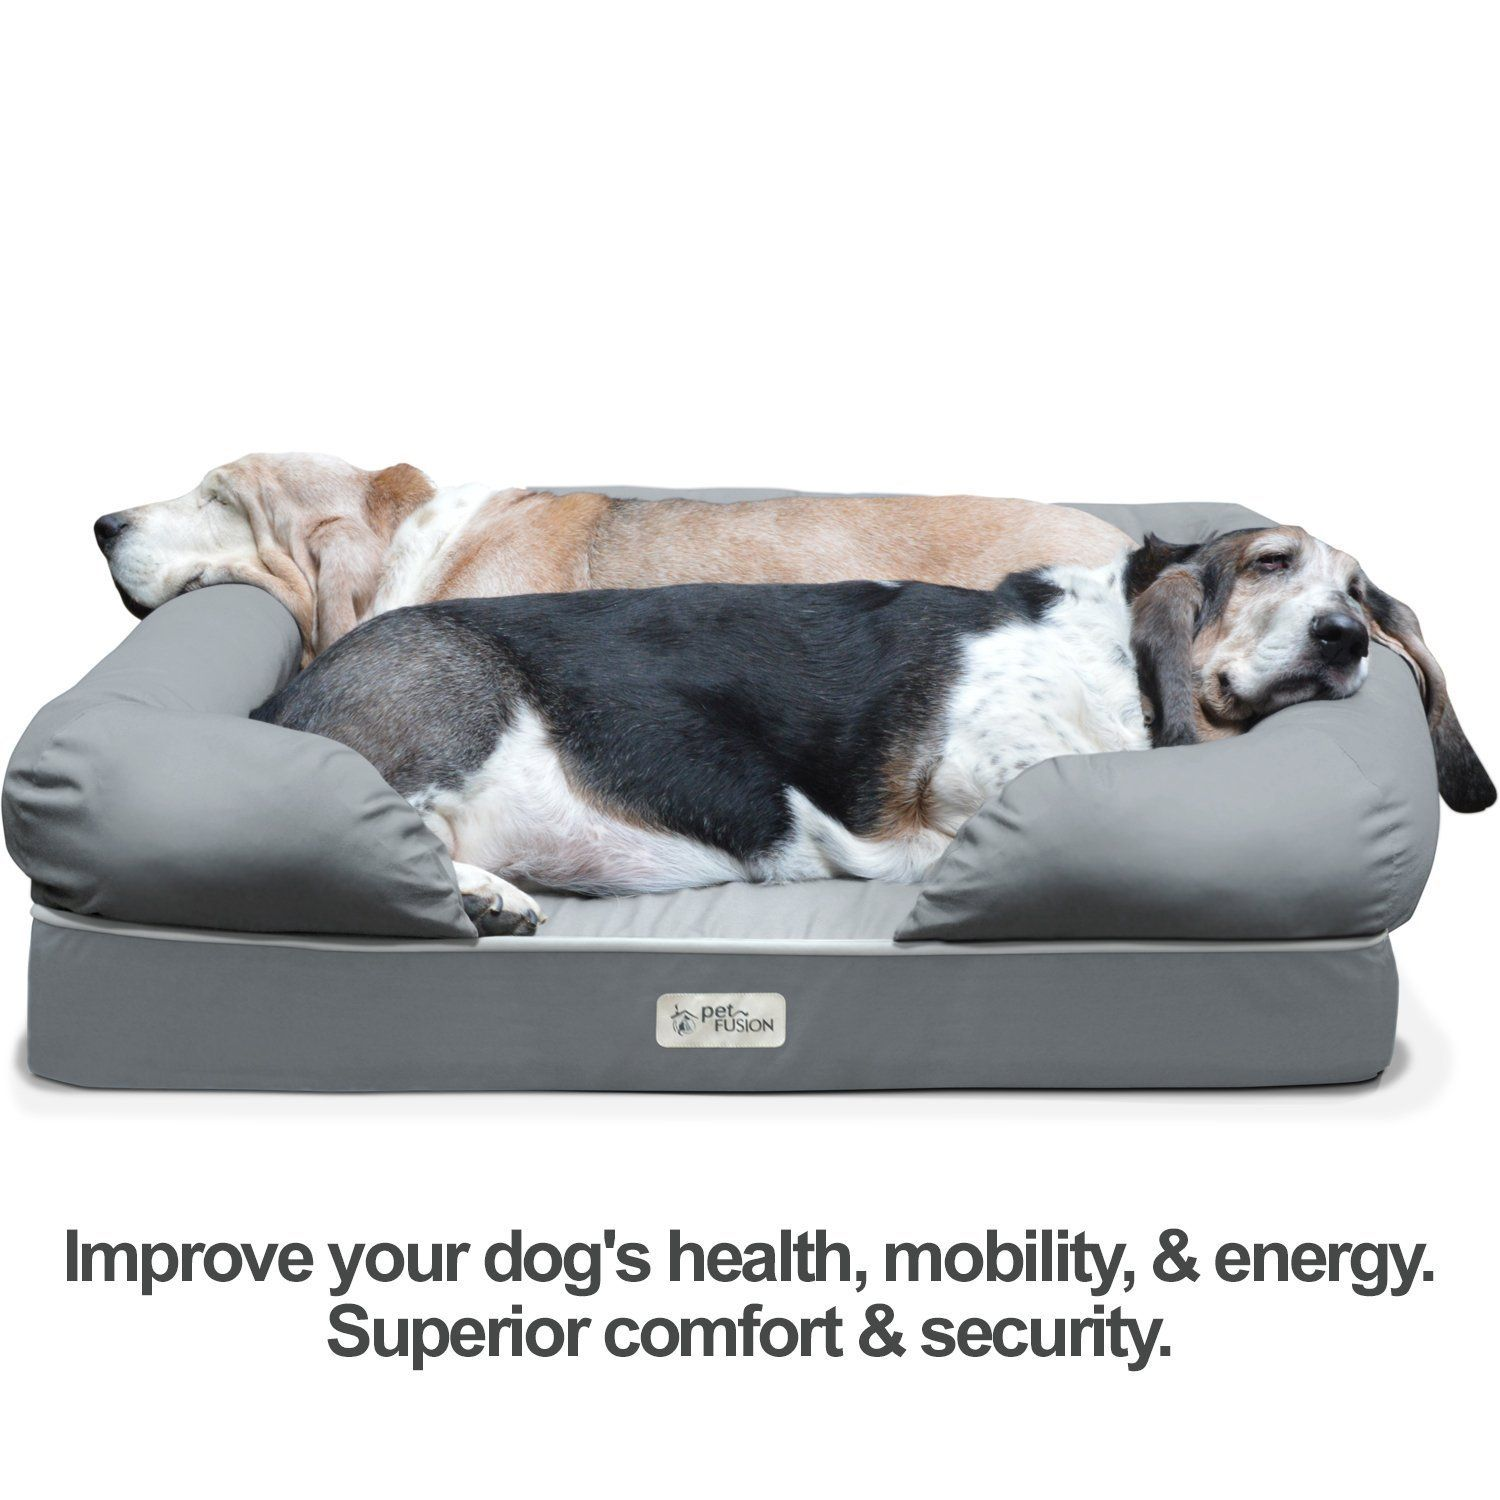 Extra large orthopedic dog beds best price - Best Orthopedic Dog Beds There Are Many Benefits Of Orthopedic Dog Beds And Most Of Those Can Be Reaped By Medium Dogs And Especially Large And Extra